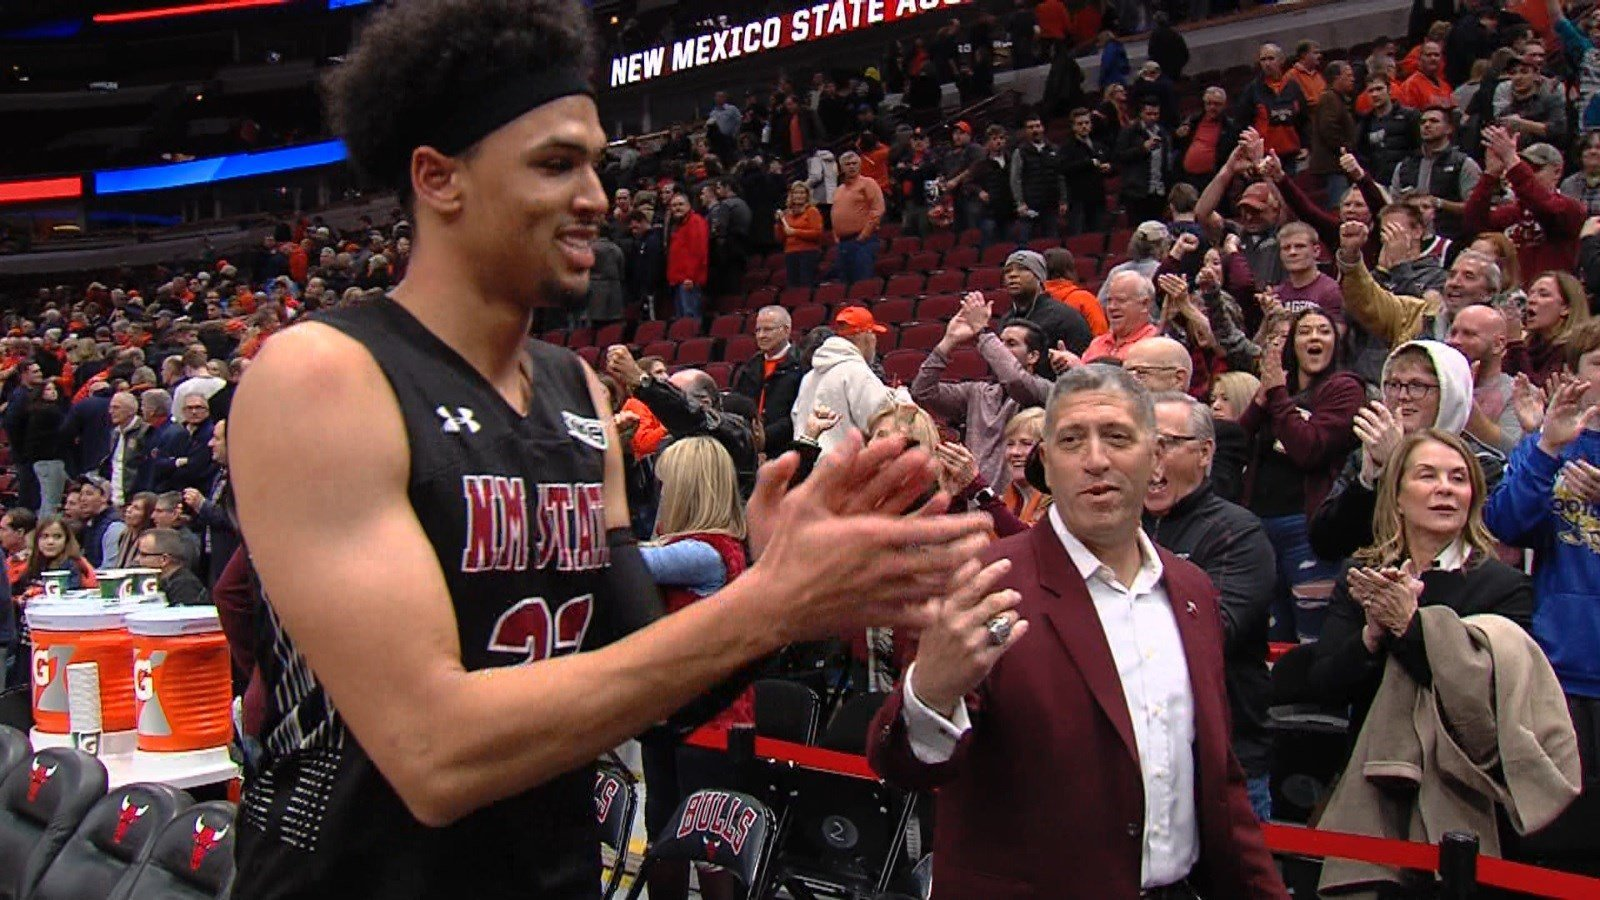 New Mexico State's Eli Chuha celebrates the Aggies' 74-69 win over Illinois with athletic director Mario Moccia and the maroon-clad contingency on hand at the United Center on Saturday in Chicago.